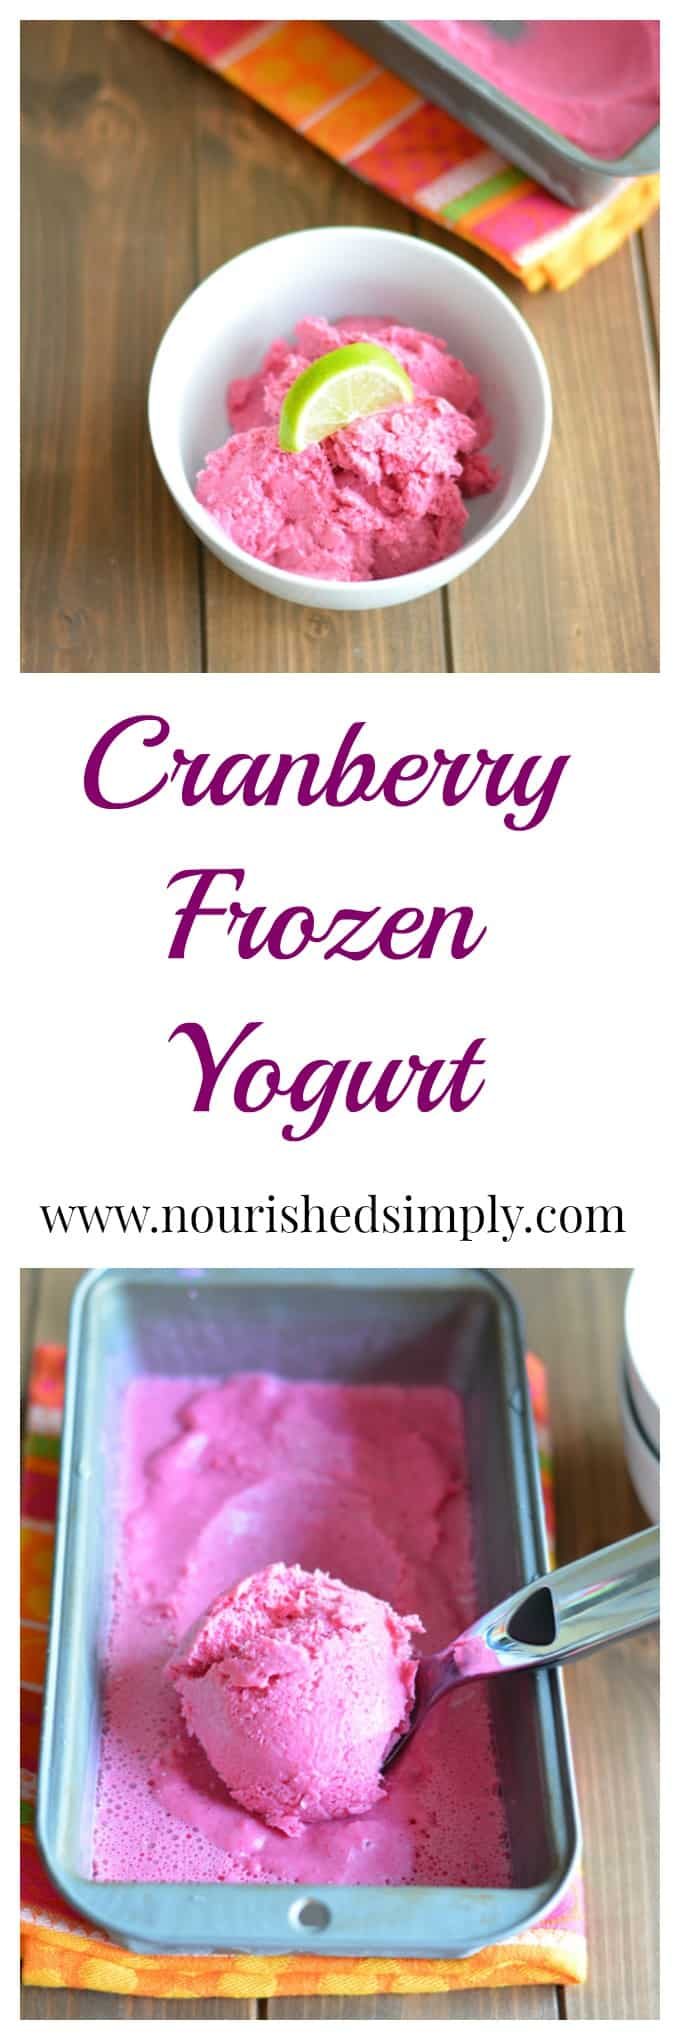 Cranberry Lime Frozen Greek Yogurt